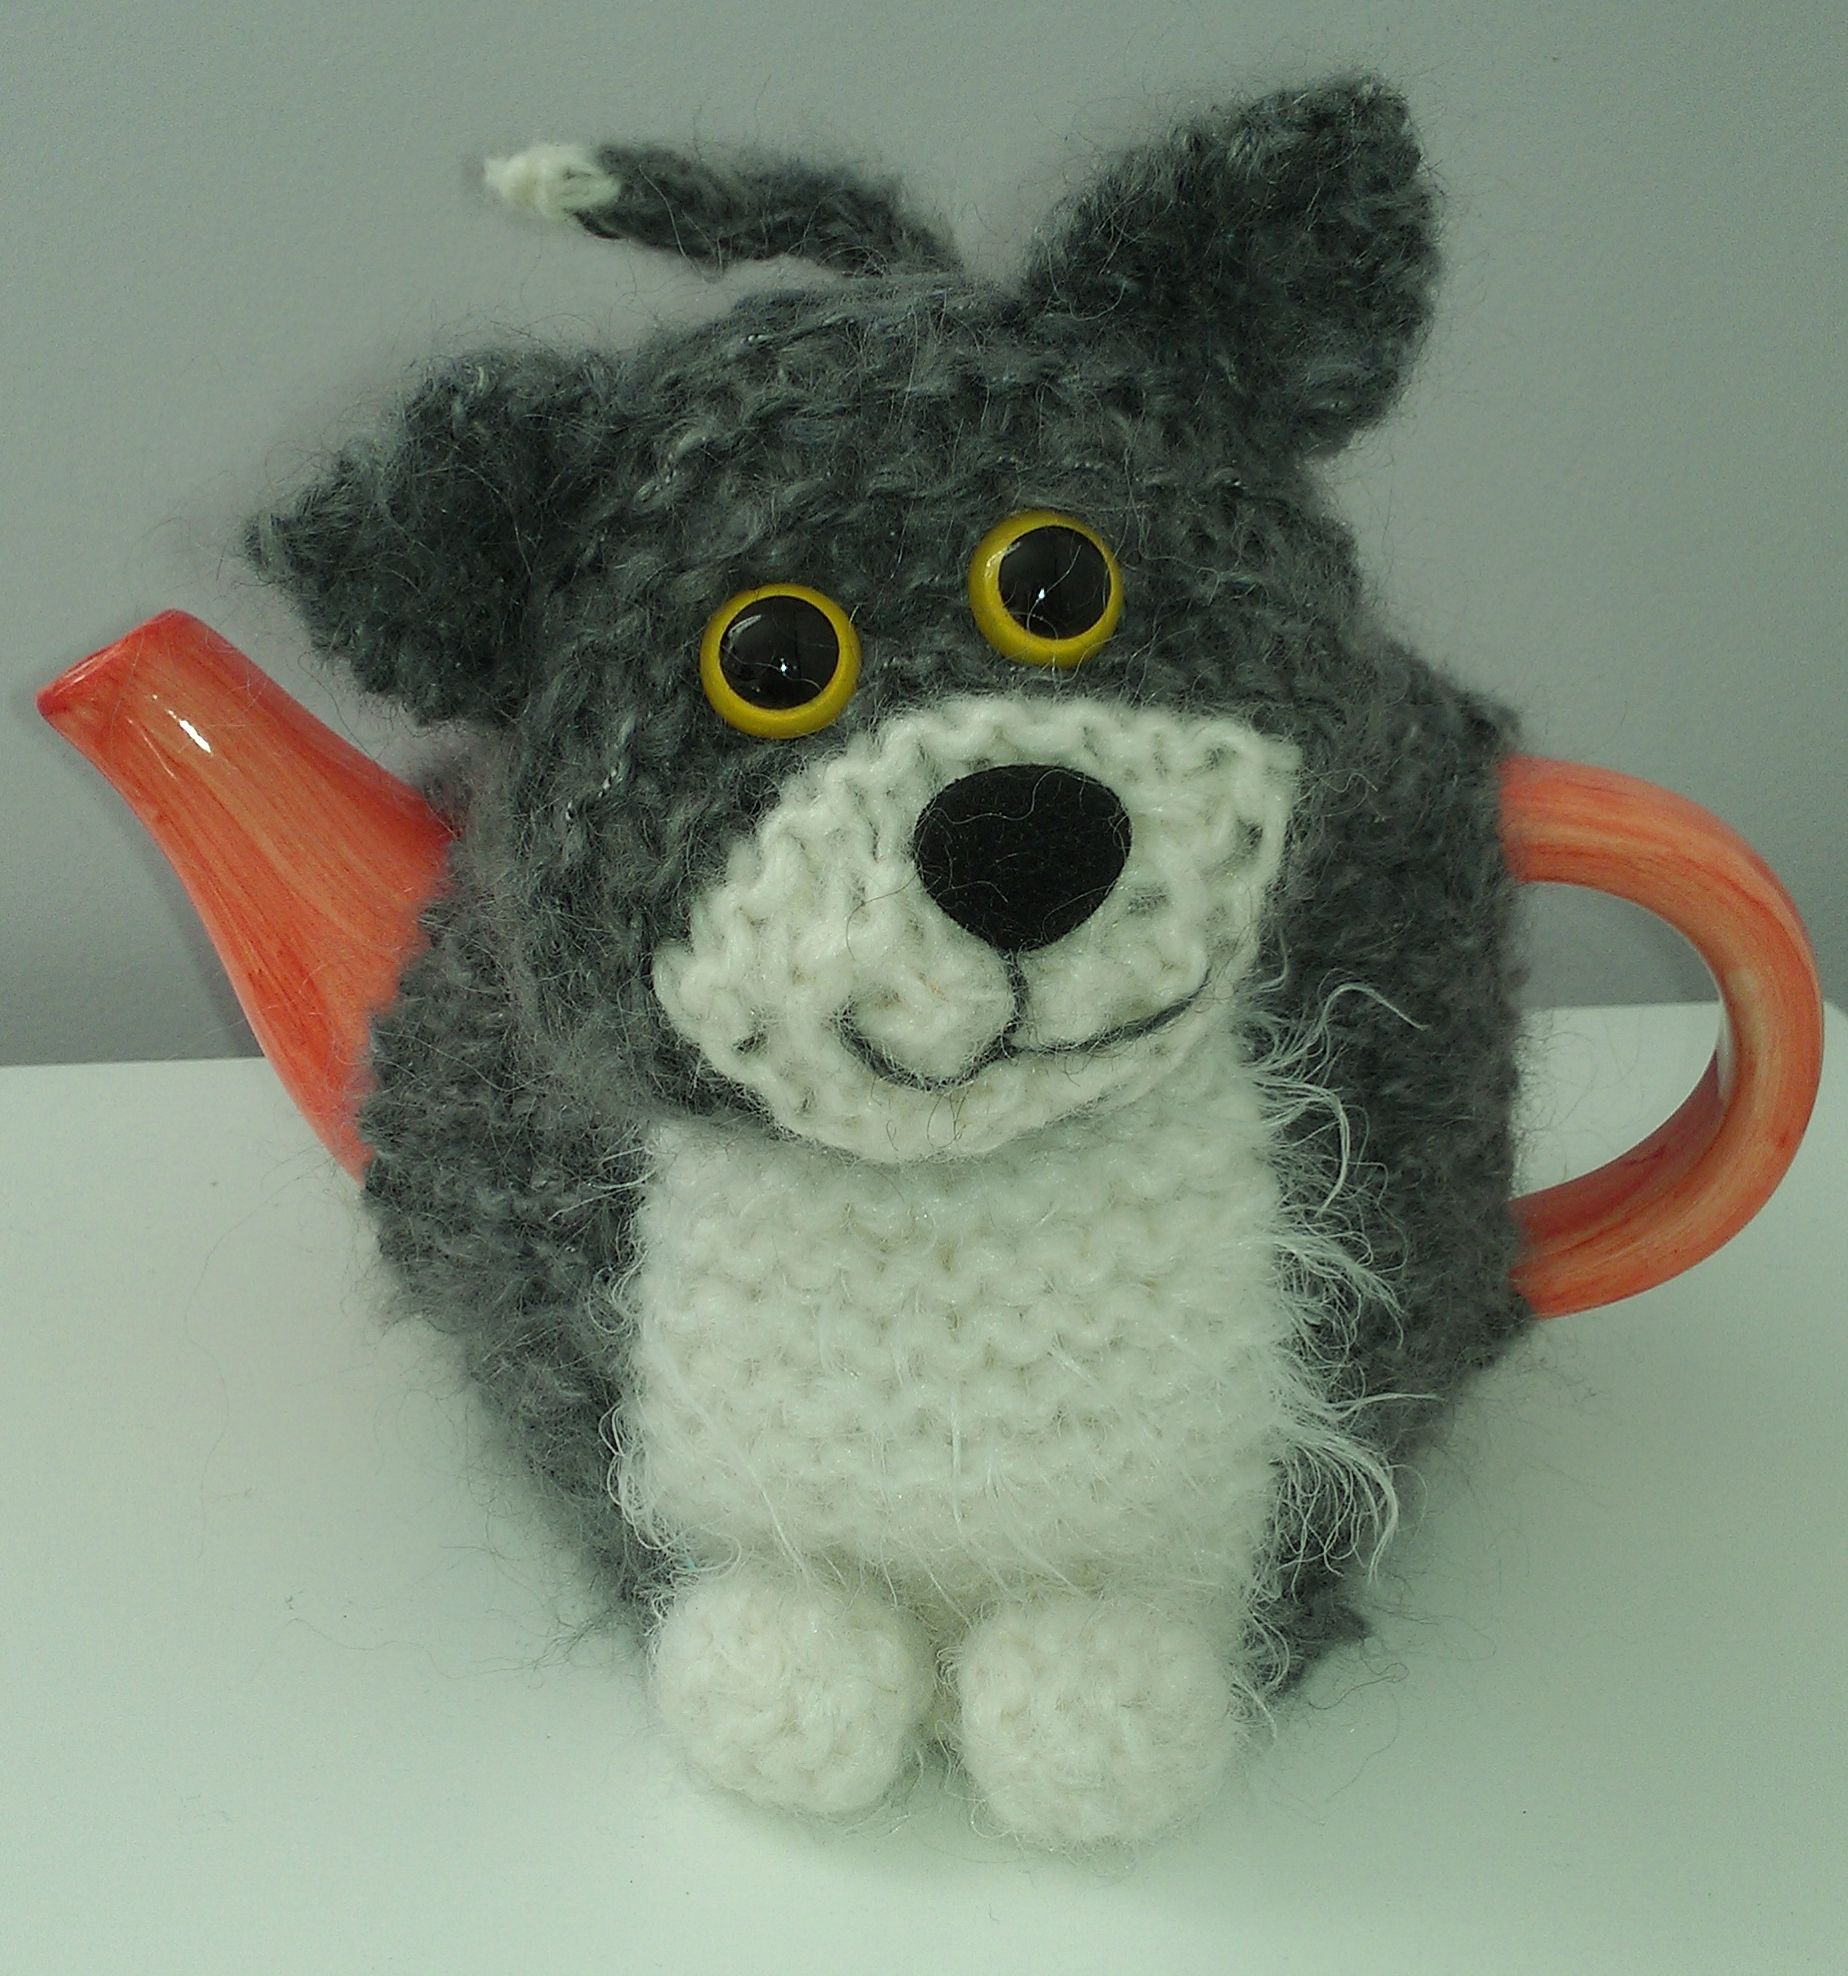 The free pattern for oliver cat is on my blog knit a tea cosy for the free pattern for oliver cat is on my blog knit a tea cosy for bankloansurffo Images